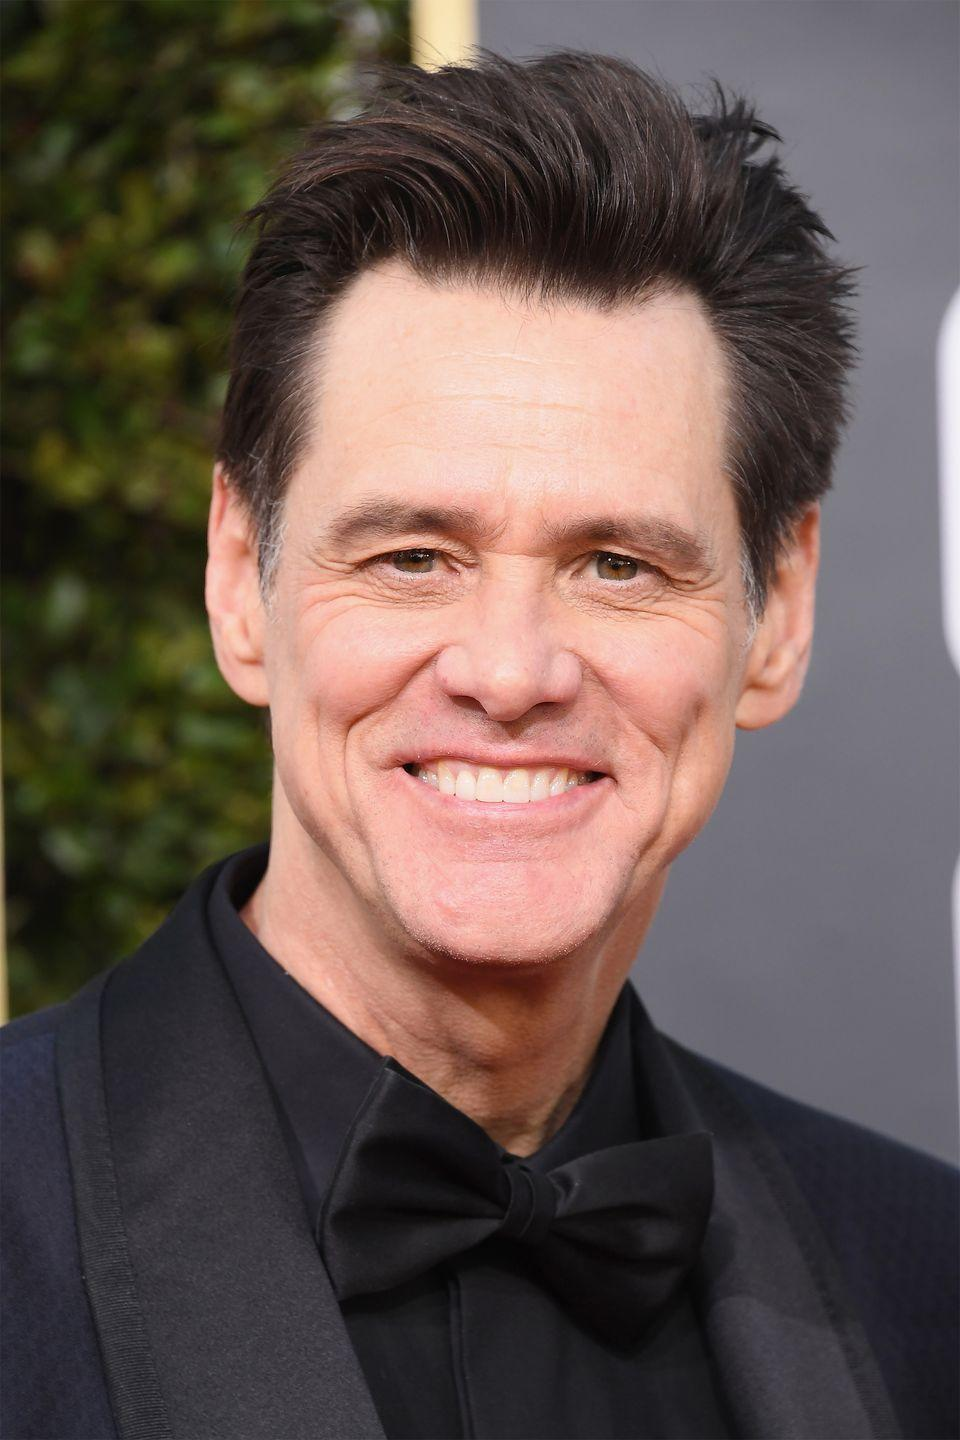 """<p>Jim Carrey <a href=""""http://www.eonline.com/photos/9003/high-school-dropouts/289961"""" rel=""""nofollow noopener"""" target=""""_blank"""" data-ylk=""""slk:dropped out"""" class=""""link rapid-noclick-resp"""">dropped out</a> of school not to pursue acting, but to help support his family financially.</p>"""